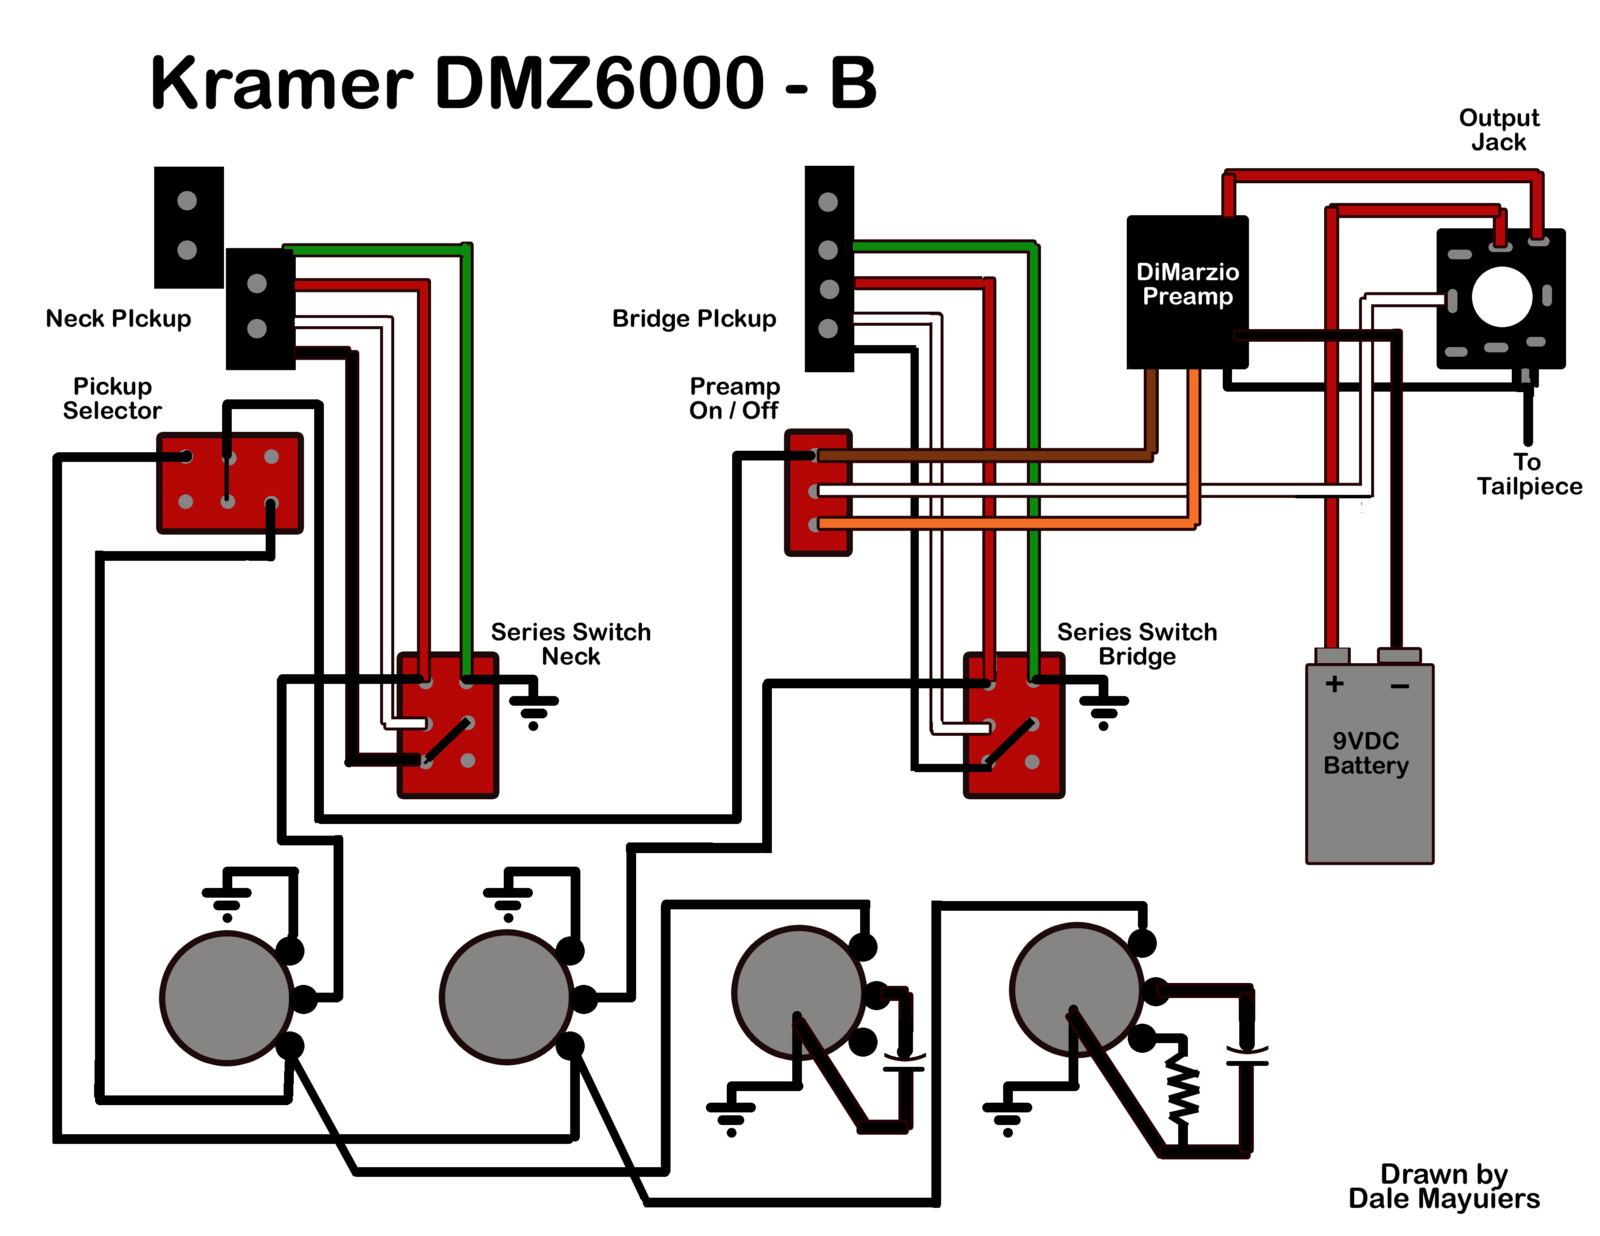 hight resolution of kramer dmz6000 wiring diagram with dimarzio preamp talkbass comdmz6000 wiring diagram png